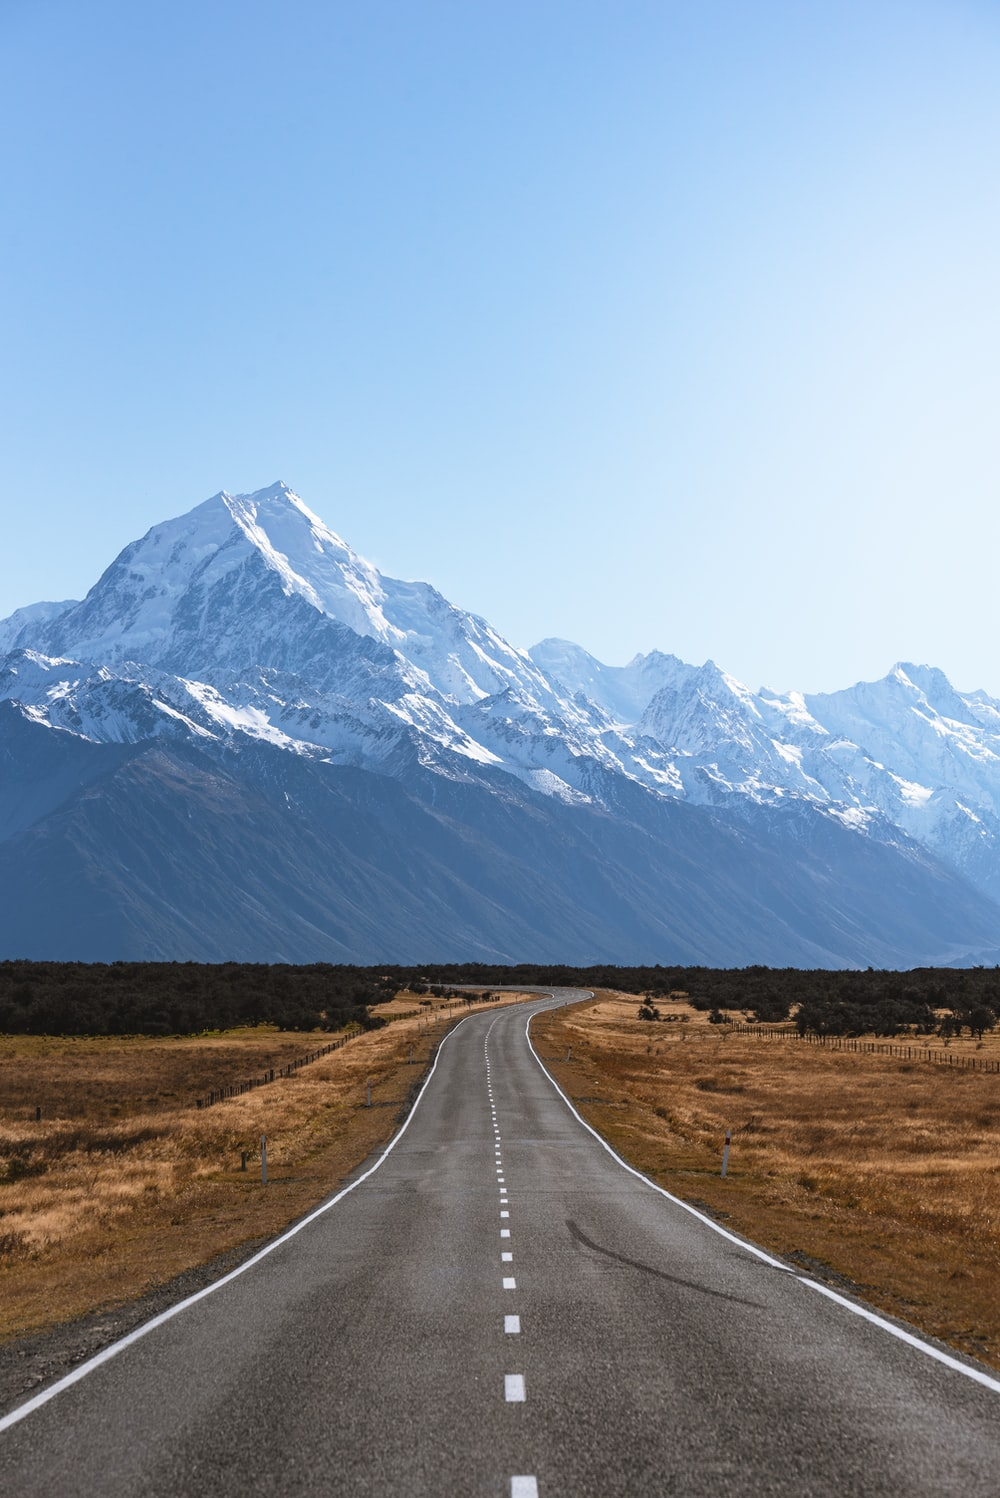 mountains covered with snow near road